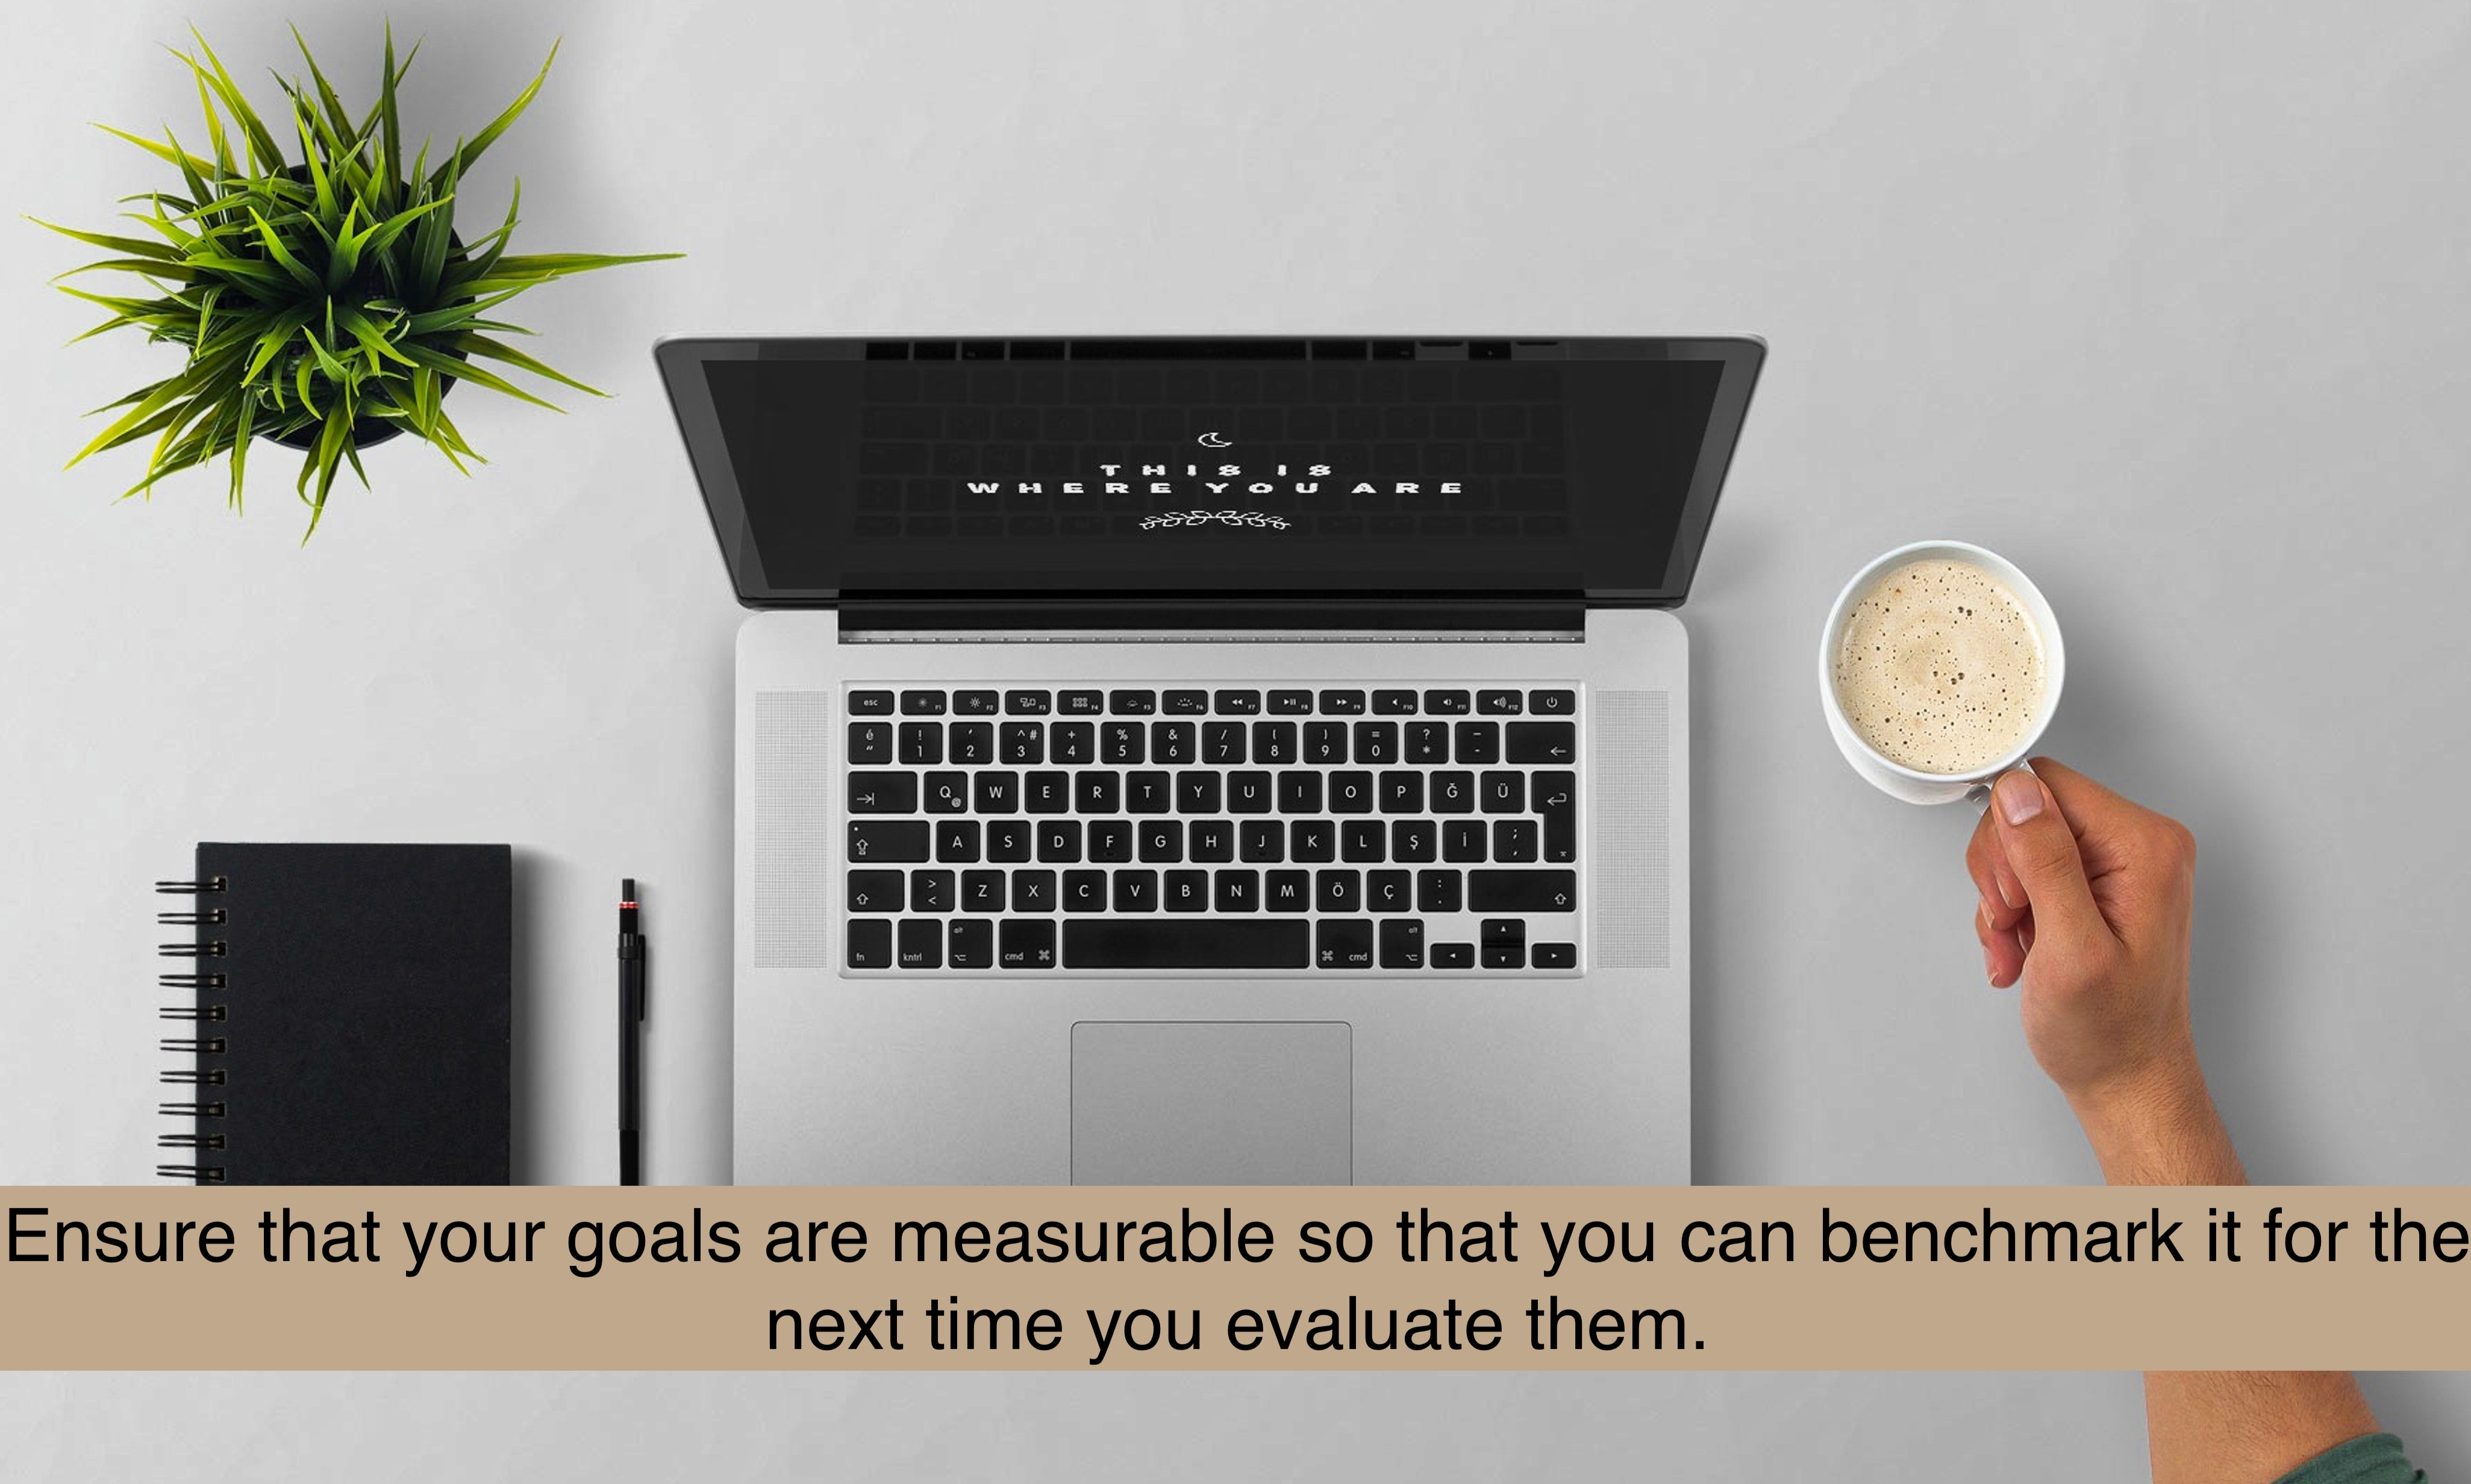 Ensure that your goals are measurable so that you can benchmark it for the next time you evaluate them.